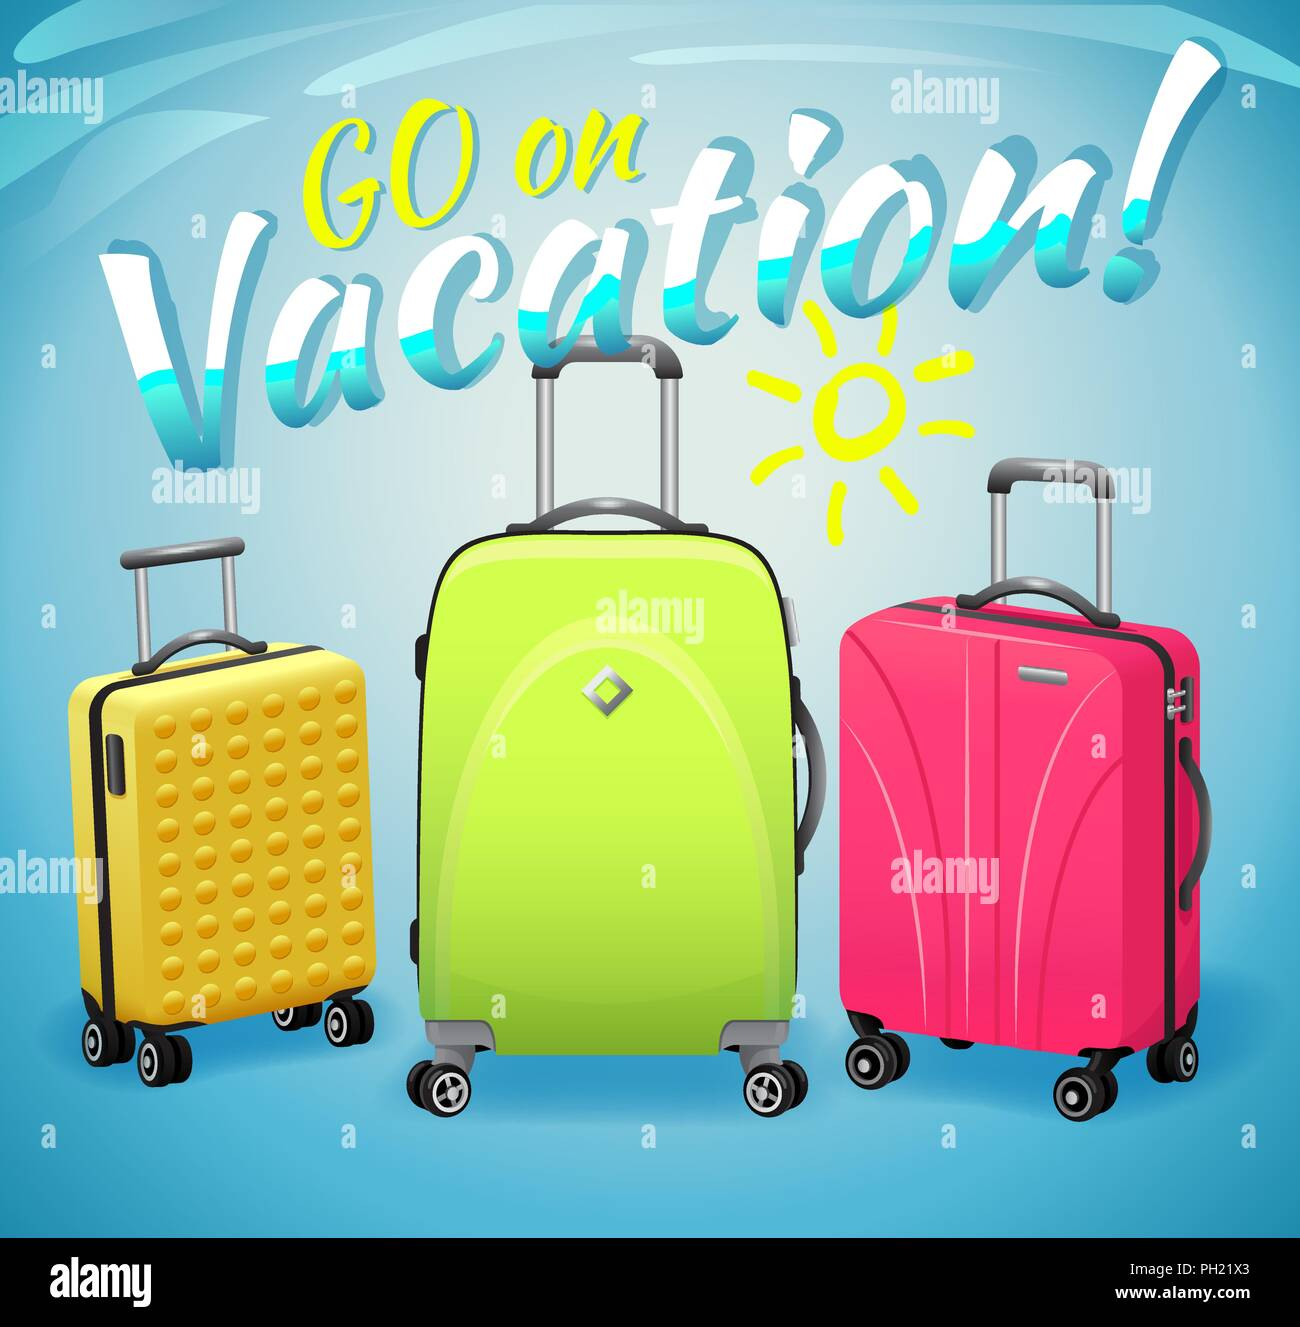 Sign Go on vacation and three luggage travel bags isolated on blue background. Luggage and travel illustration. - Stock Vector